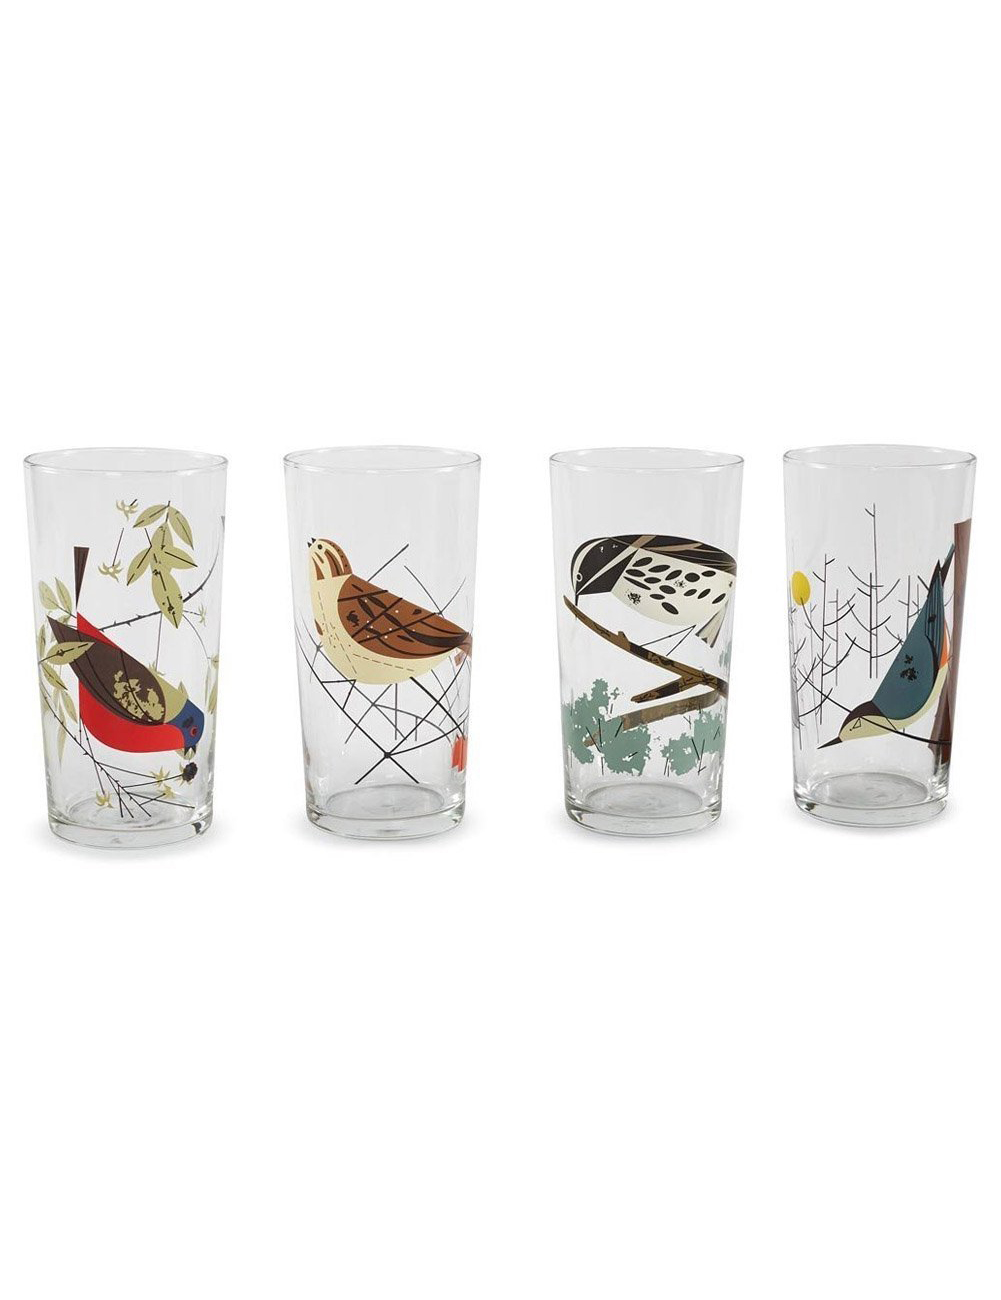 Charley Harper Original Birds Glasses